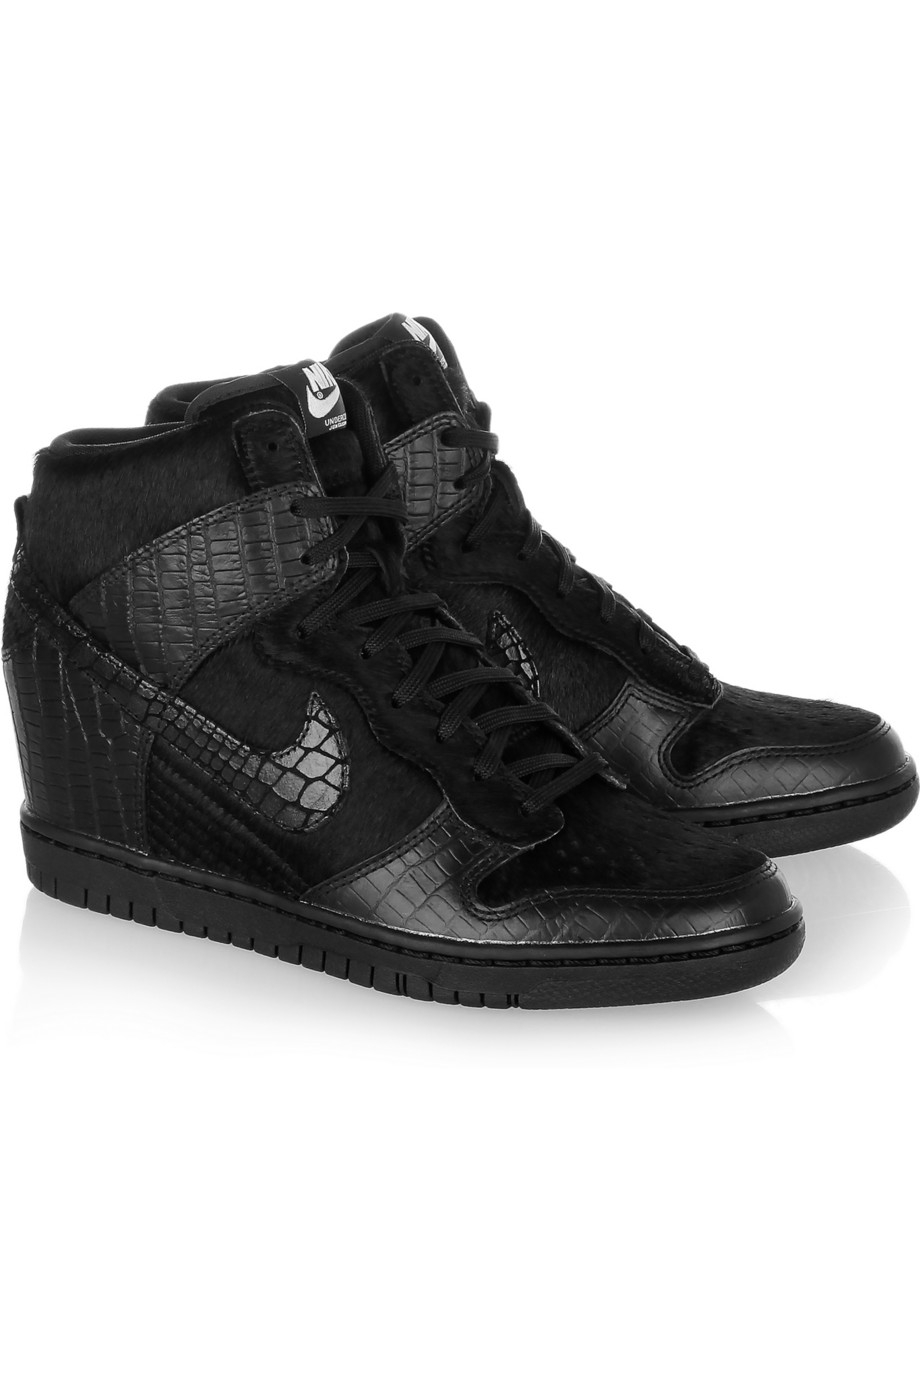 d935d31420ba Lyst - Nike Undercover Dunk Sky Hi Leather and Faux Calf Hair ...